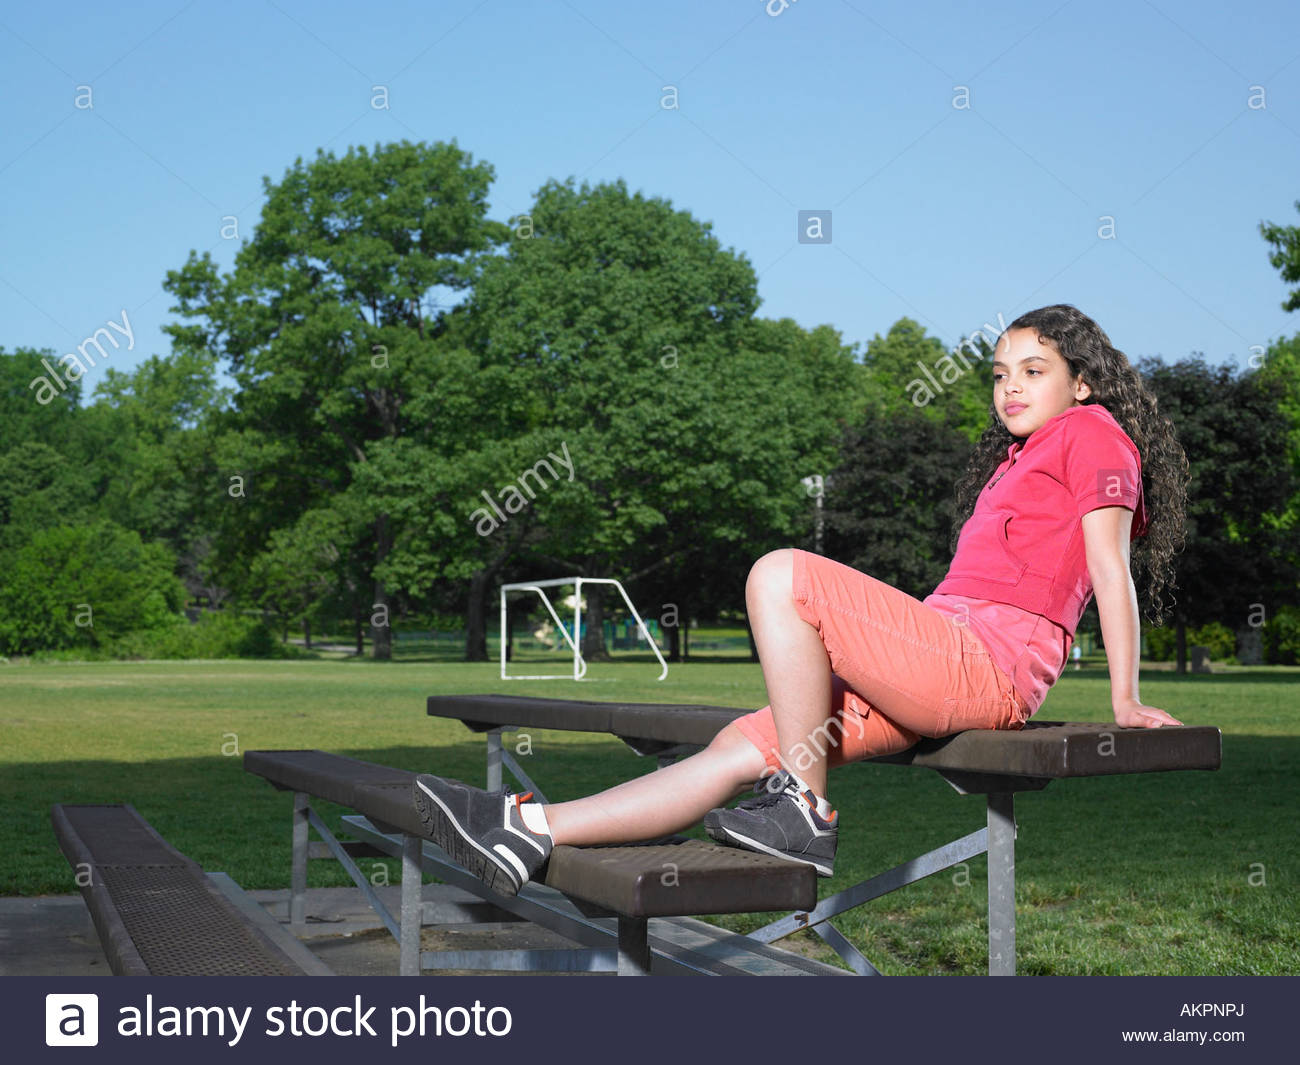 A girl sat on a bench - Stock Image